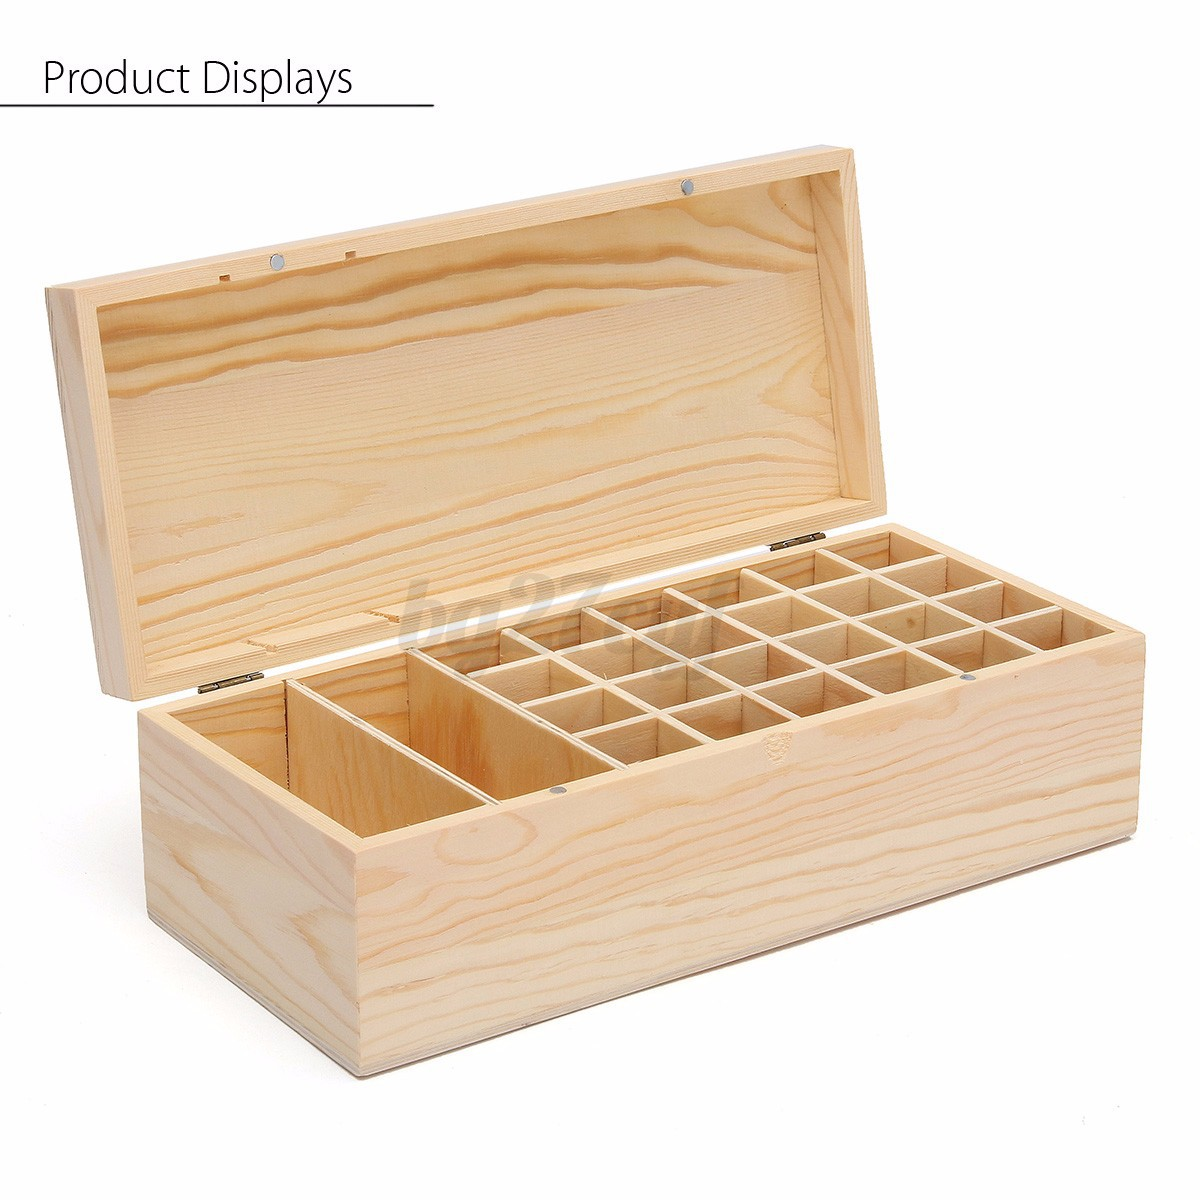 26 48 slot bo te rangement stockage bouteille huile essentielle box case coque ebay. Black Bedroom Furniture Sets. Home Design Ideas